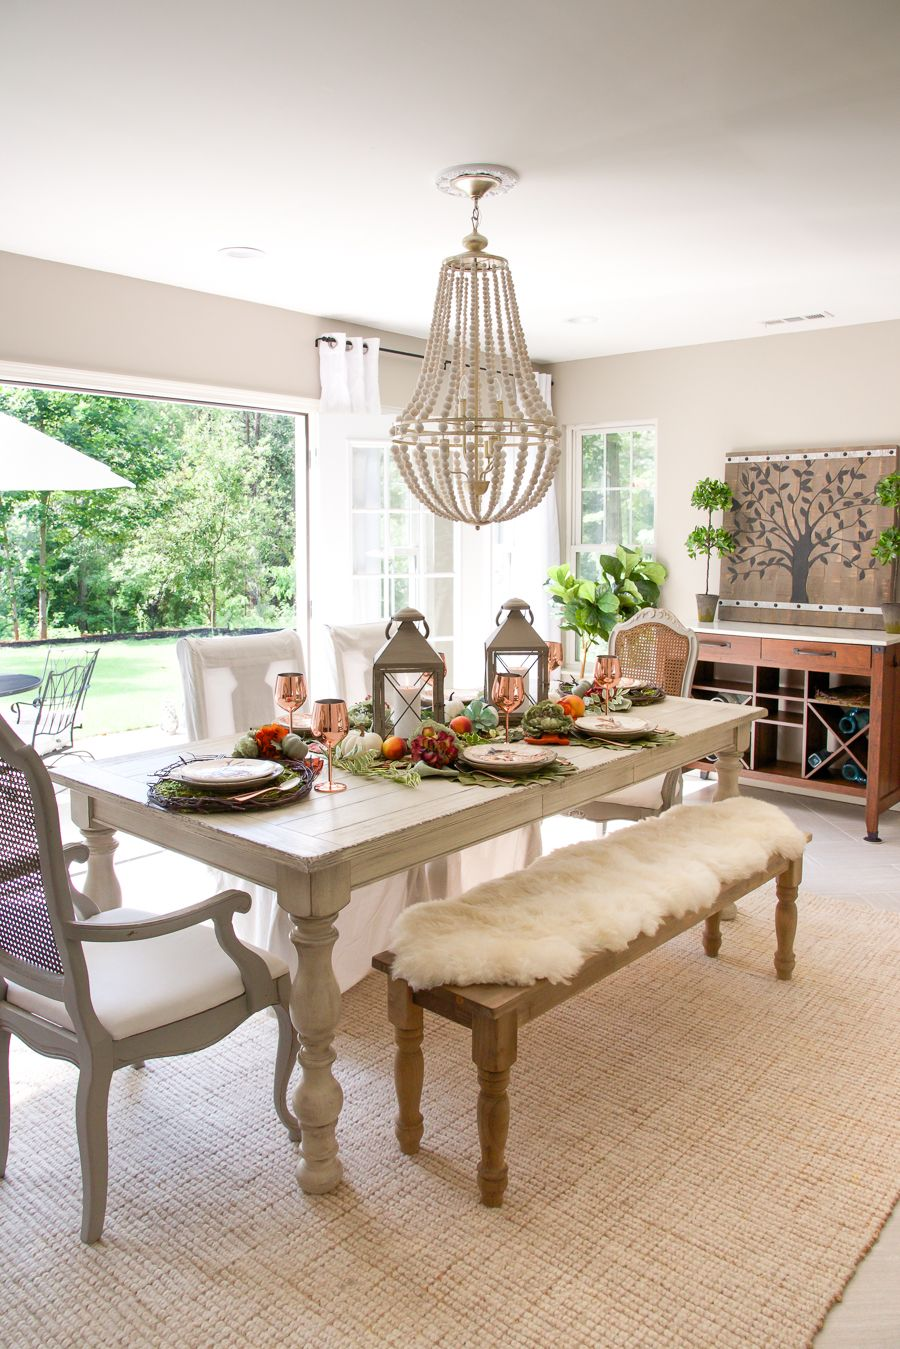 Autumn Table Tips: How to Set a Table for Fall | Dinning ...